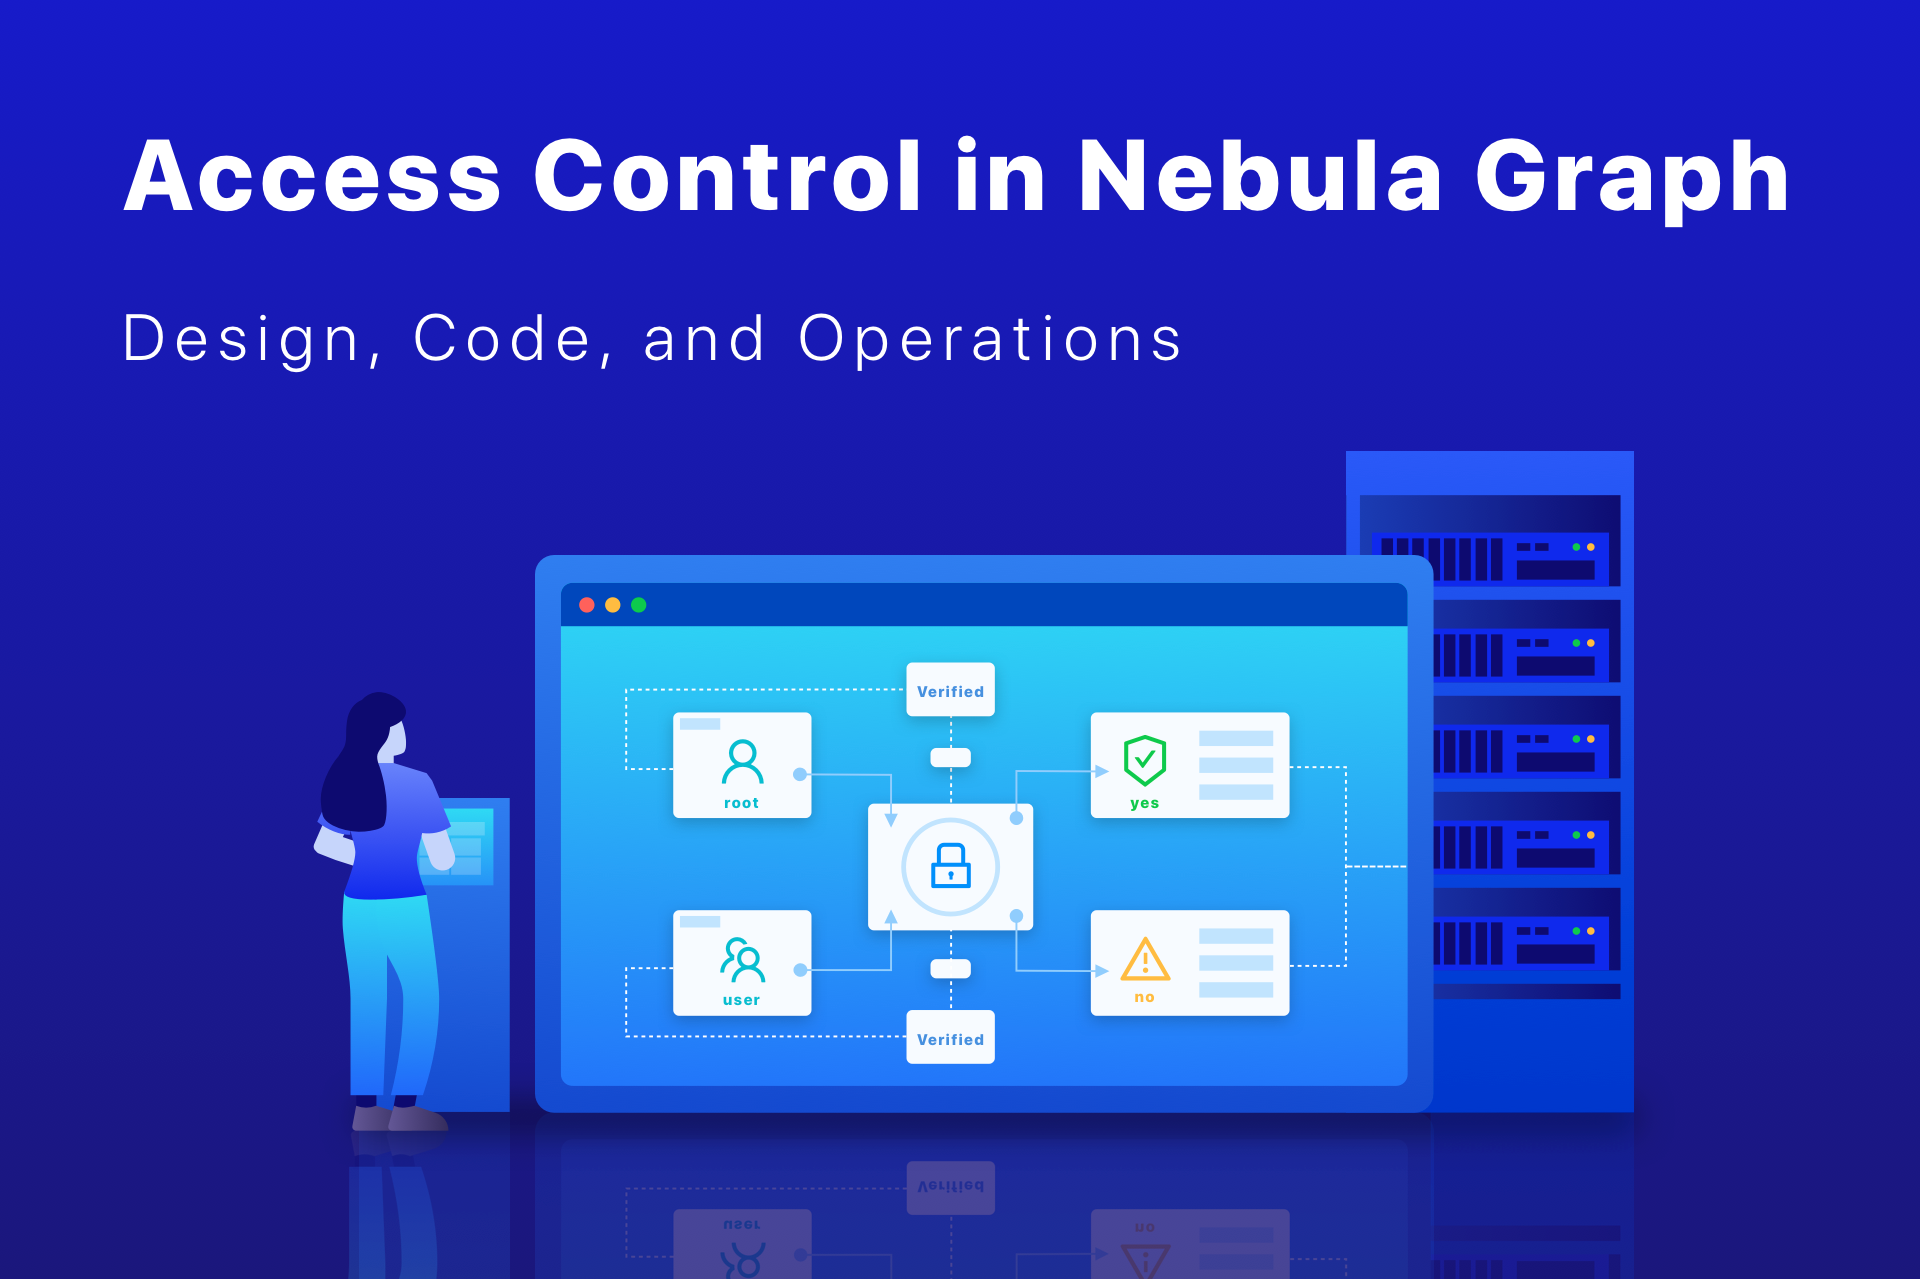 Access Control in Nebula Graph: Design, Code, and Operations